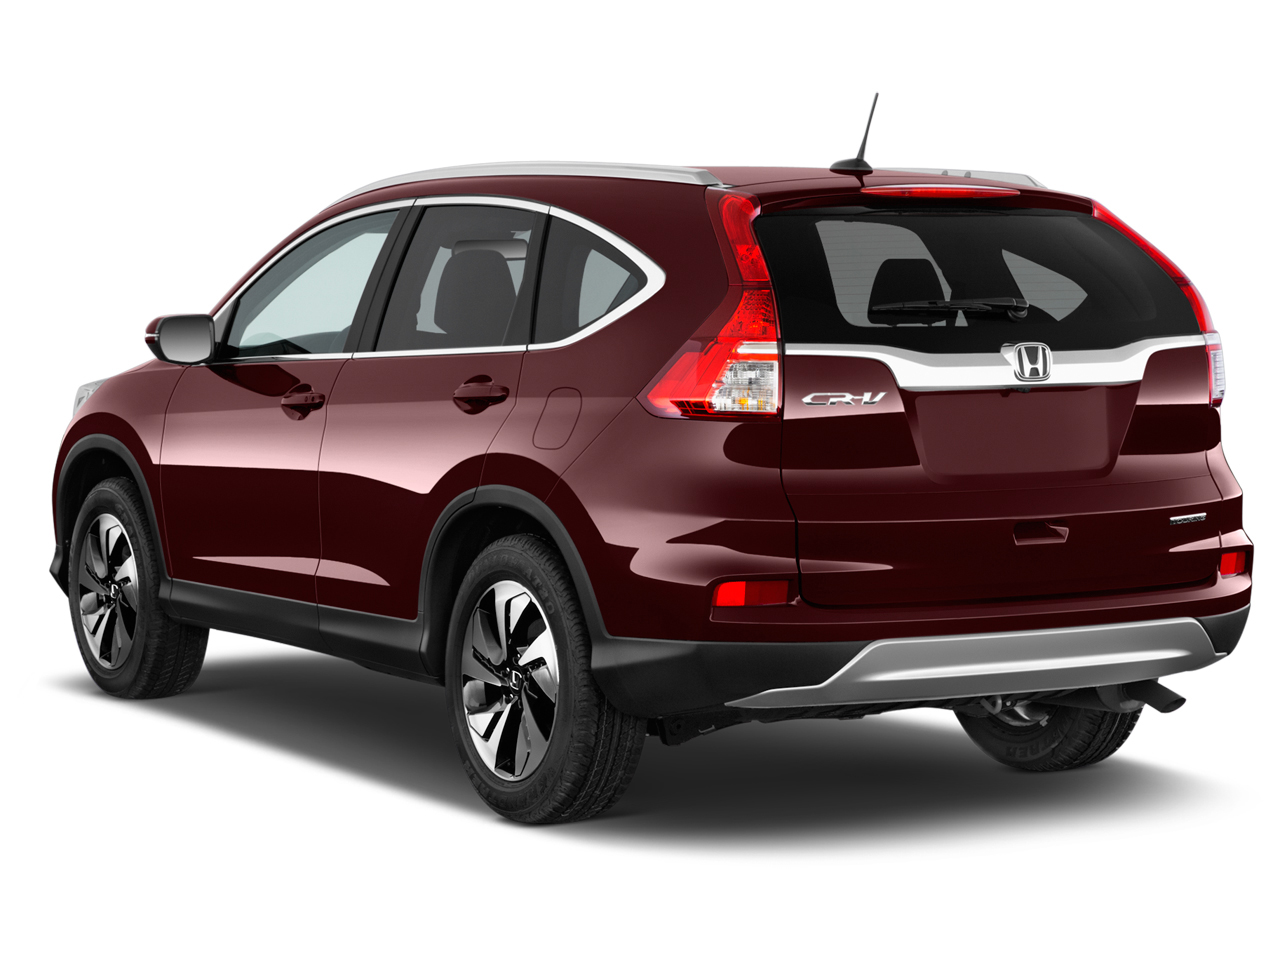 Nissan rogue vs honda cr v compare cars for Truecar com honda crv